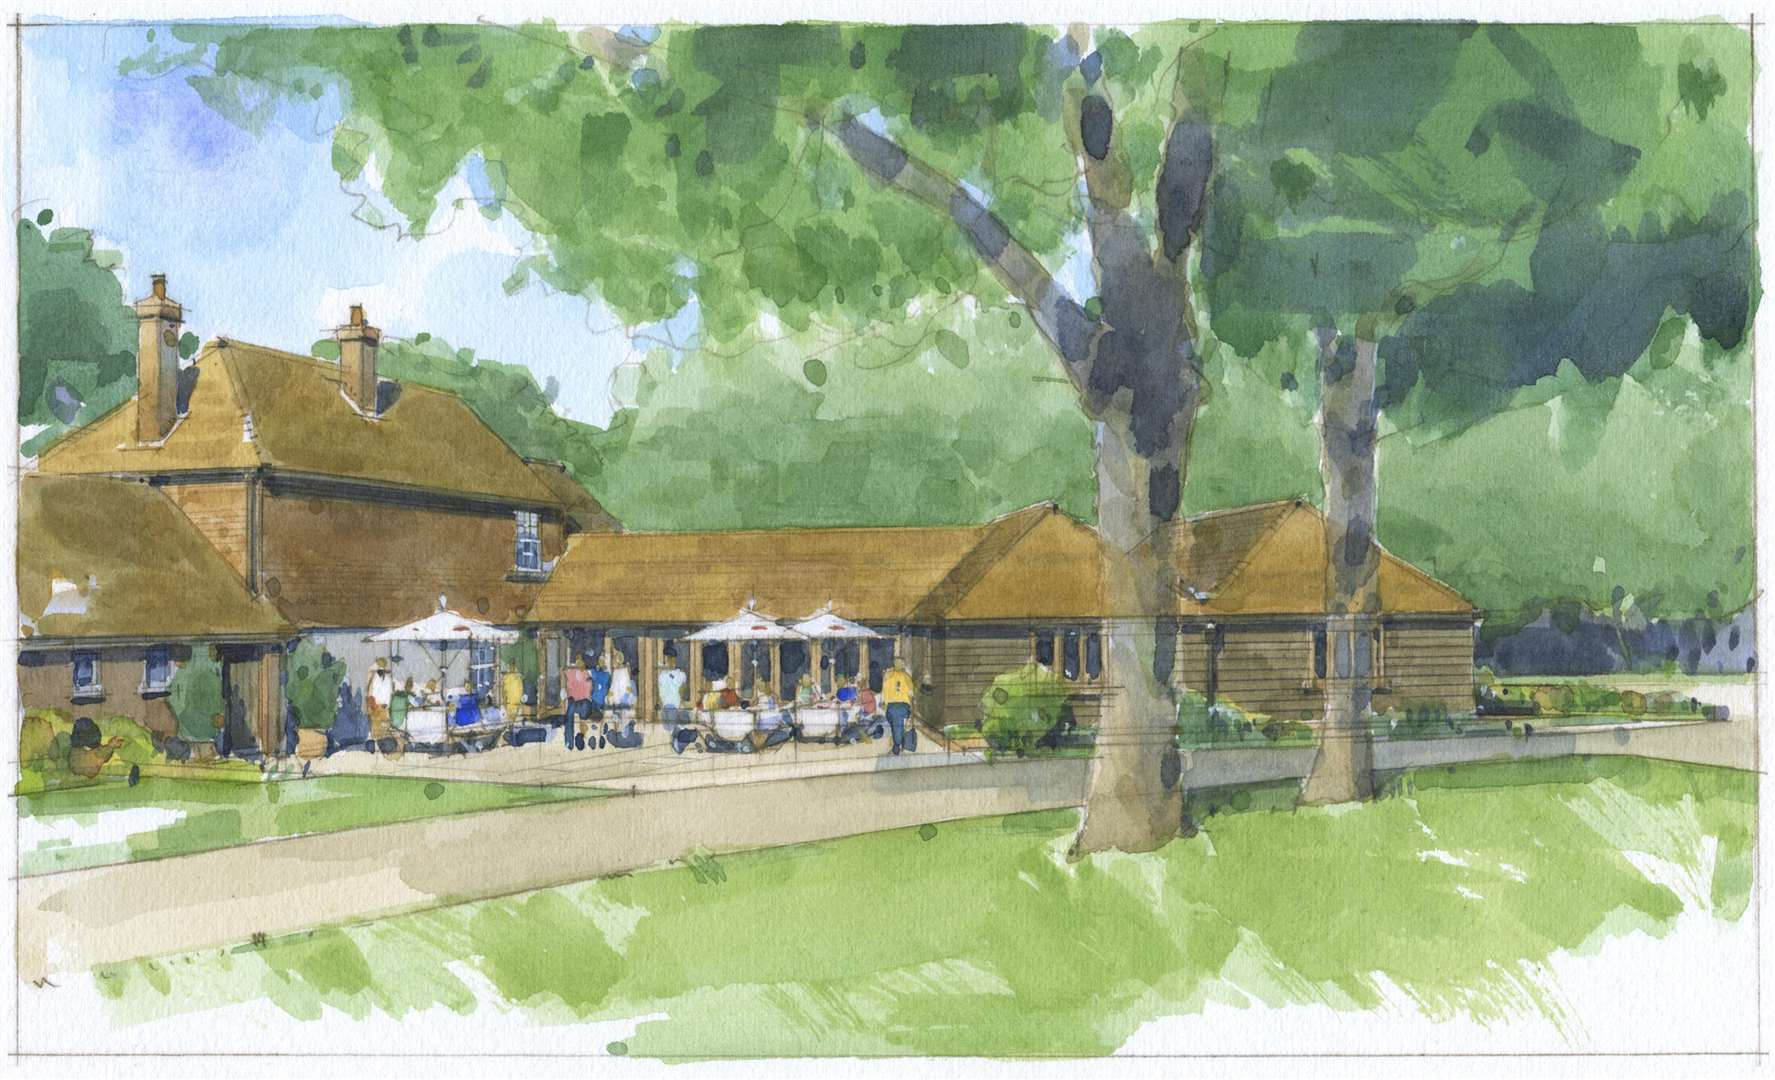 An artist's impression from 2010 shows plans for The Old Mill, which came to fruition in 2012